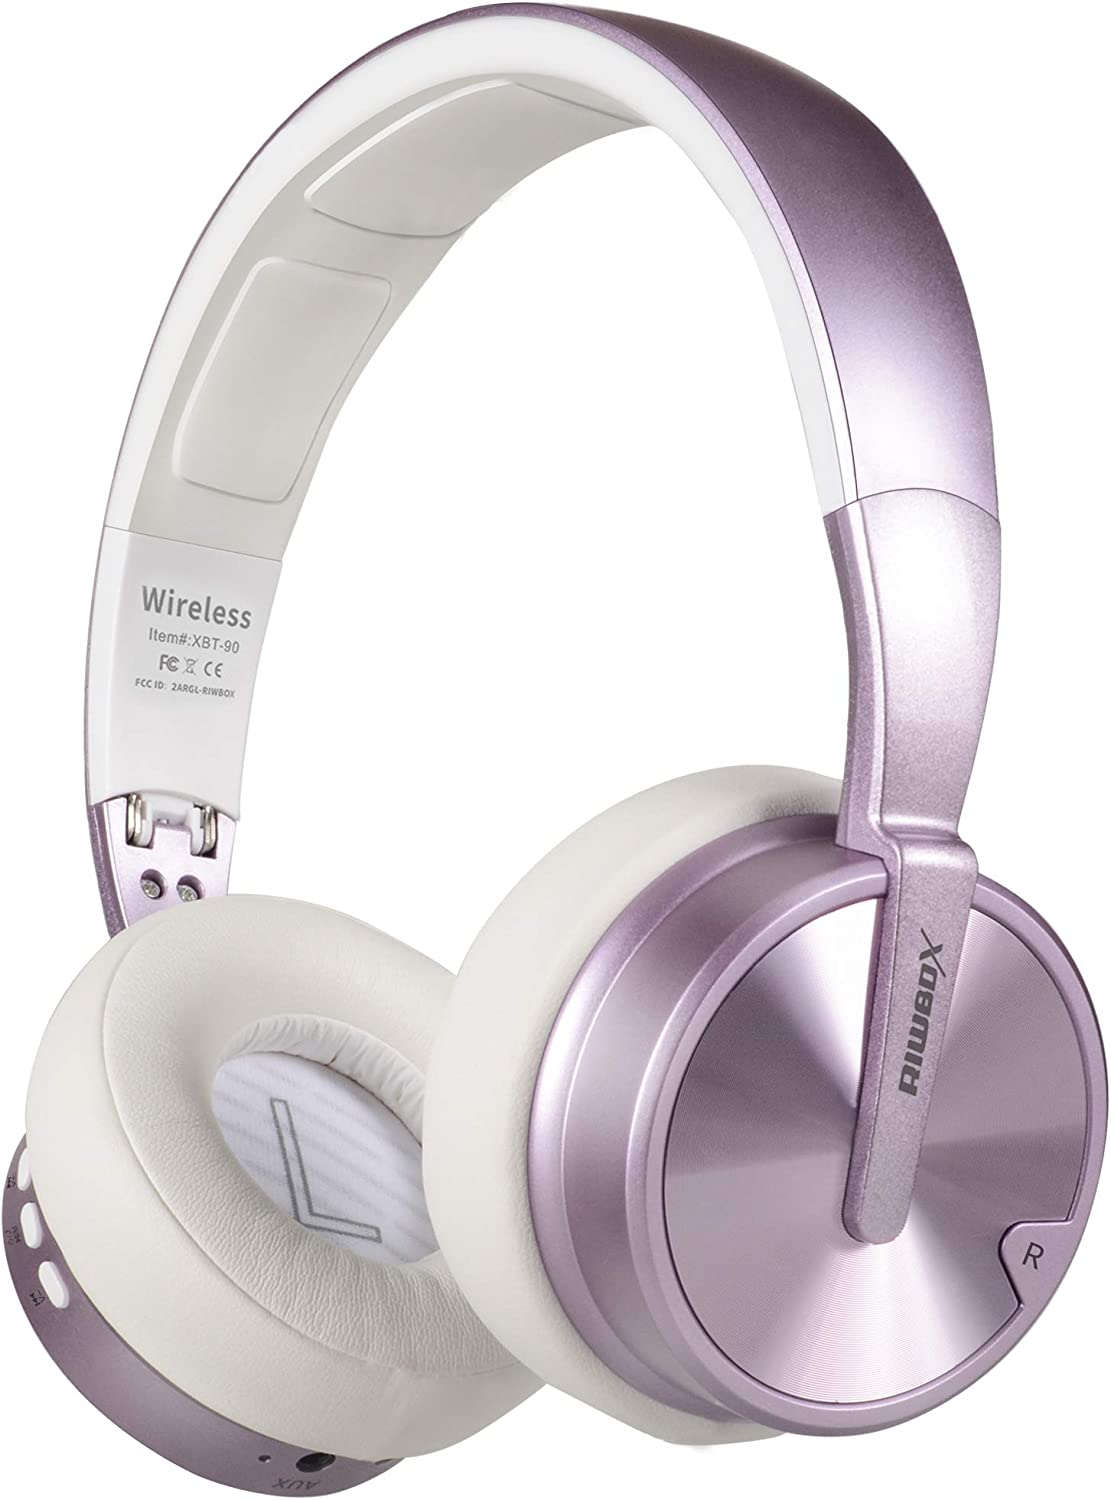 Bluetooth Headphones, Riwbox XBT-90 Foldable Wireless Bluetooth Headphones Over Ear Hi-Fi Stereo Wireless Headset with Mic TF Card and Volume Control Compatible for PC Cell Phones TV ipad Purple